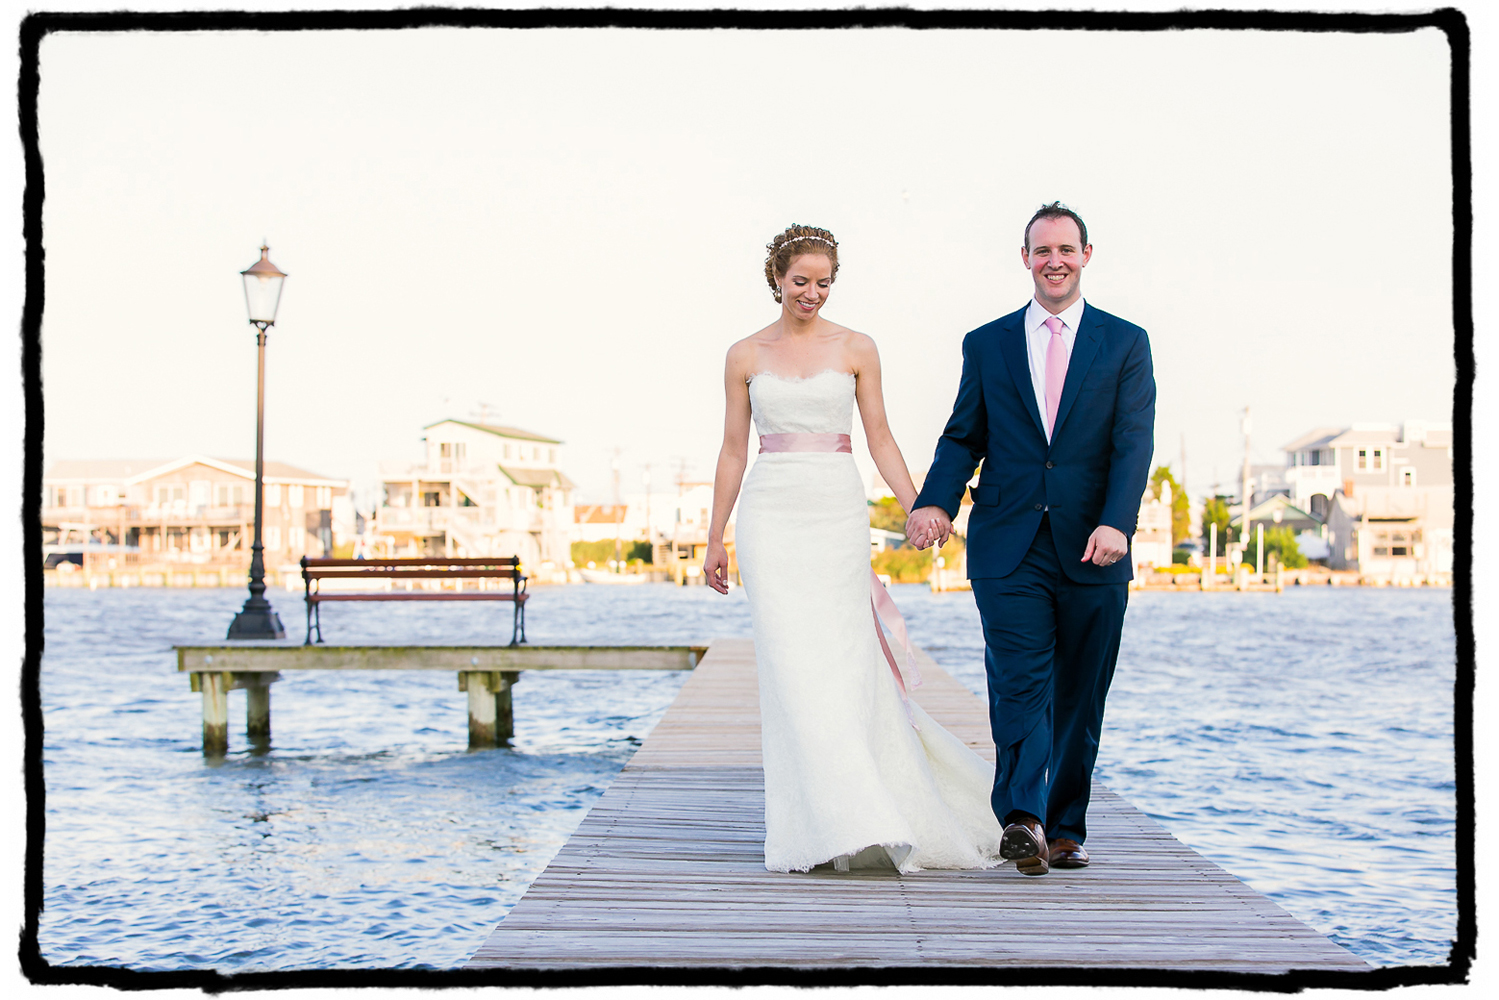 I simply had to get shots of Kelly and Scott out on this amazing dock at Bonnet Island Estate on the Jersey shore.